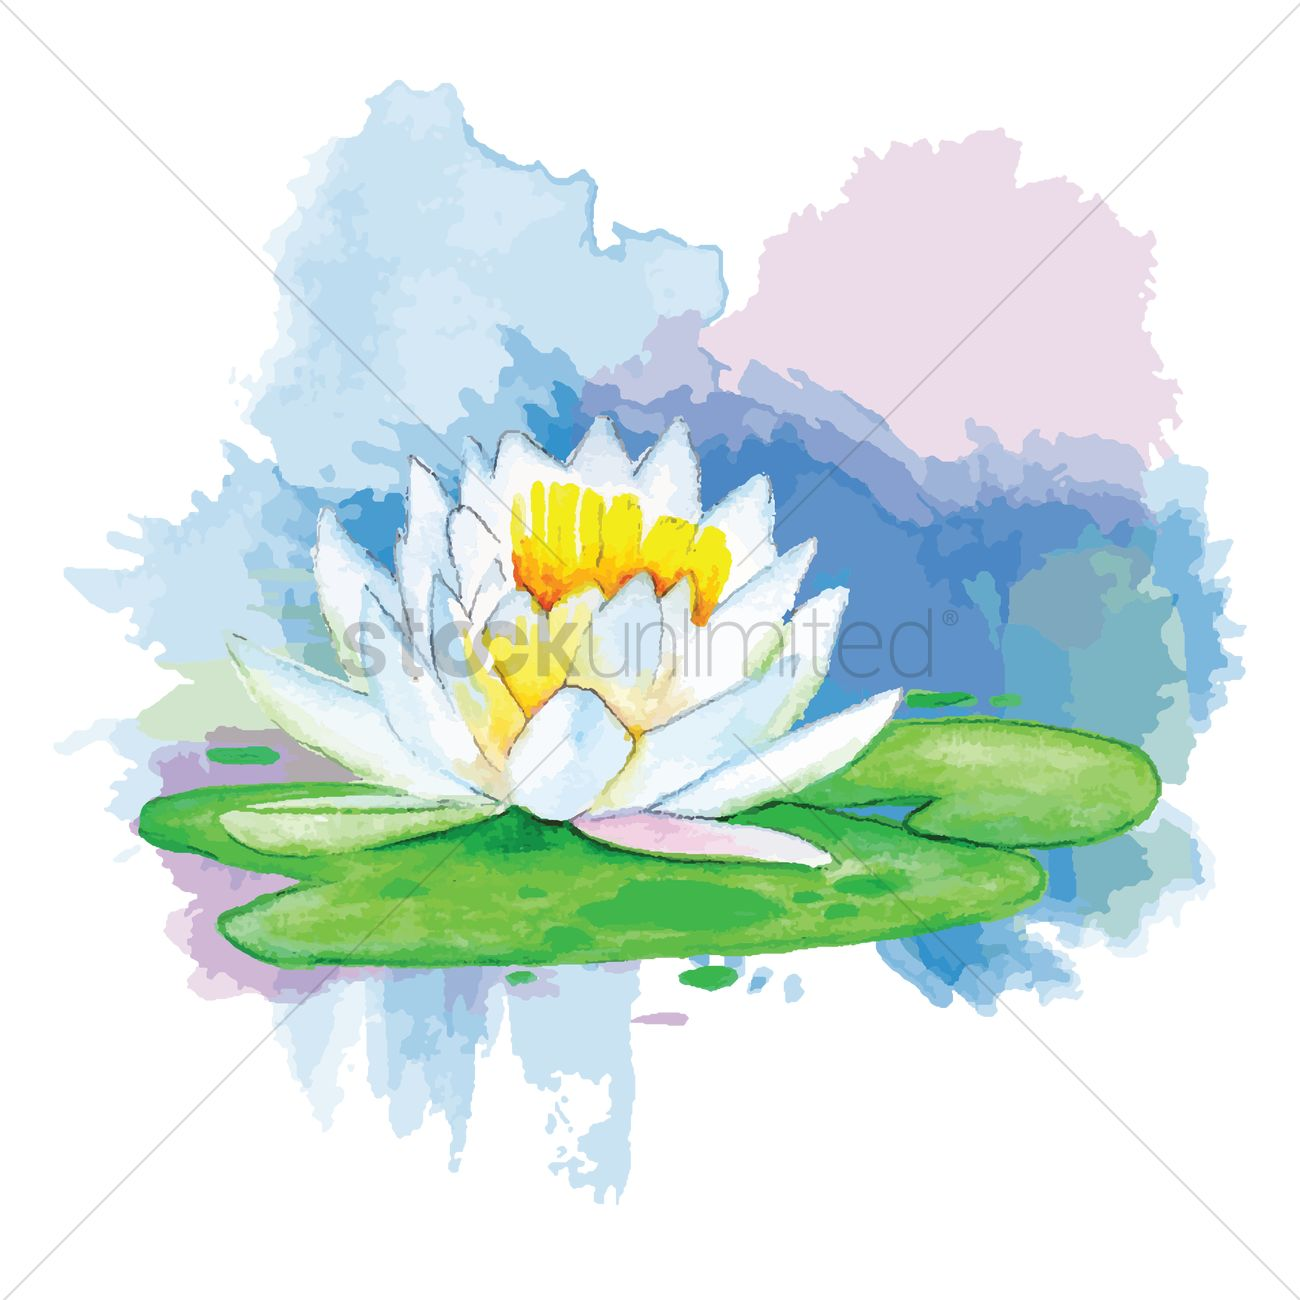 Lotus Flower With Leaf Vector Image 1869621 Stockunlimited